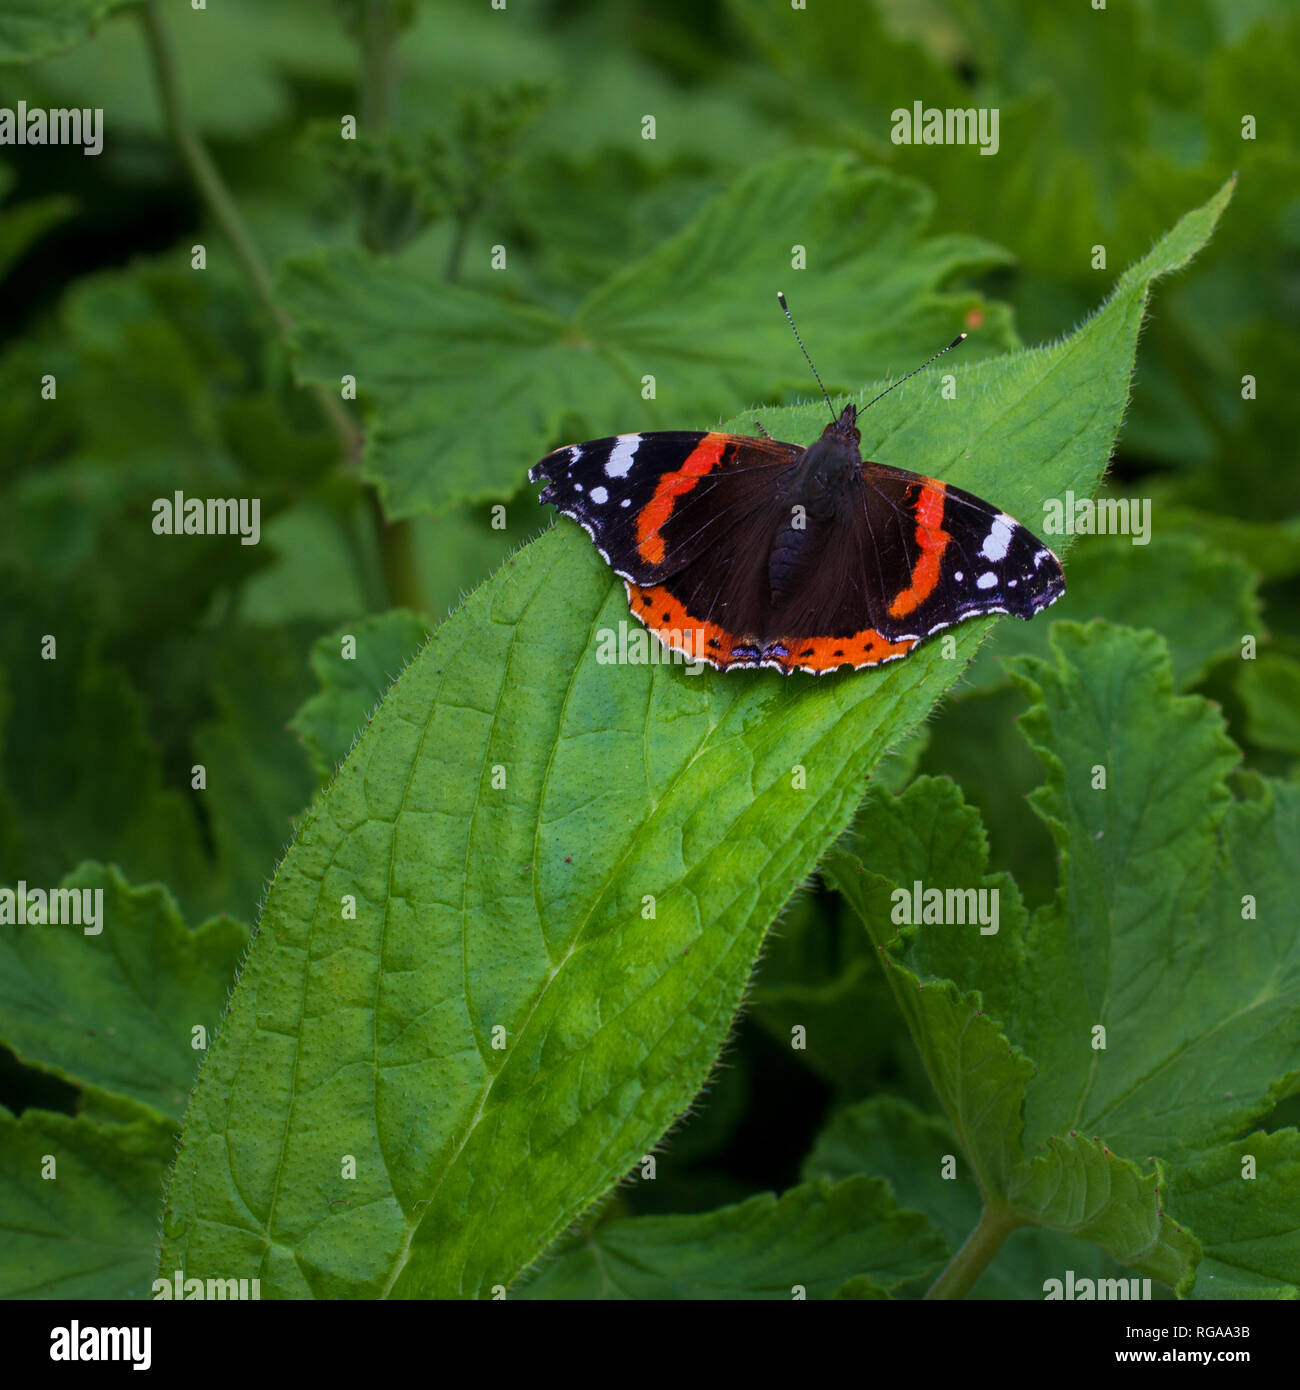 A Red Admiral (Vanessa atalanta) butterfly has black wings with white and orange markings and is sitting on a green leaf - Stock Image